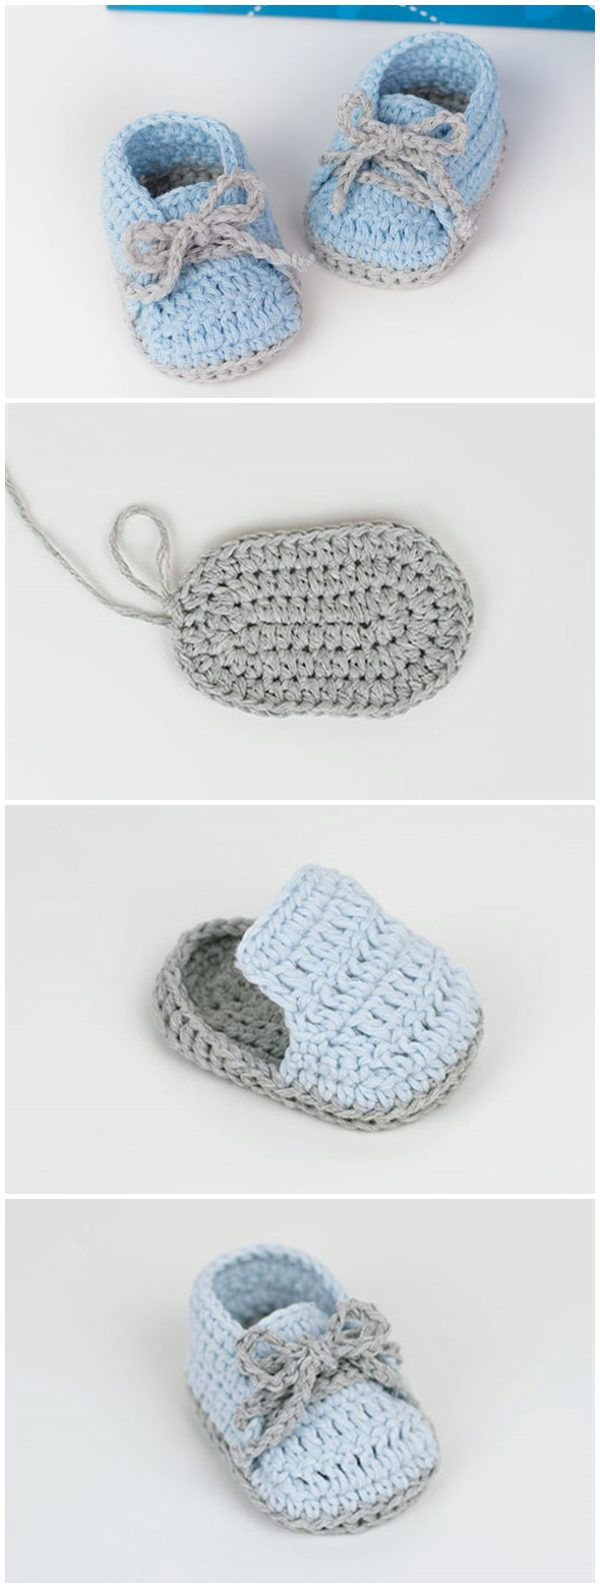 Crochet Baby Sneakers Free Pattern   Palabras poco comunes ...